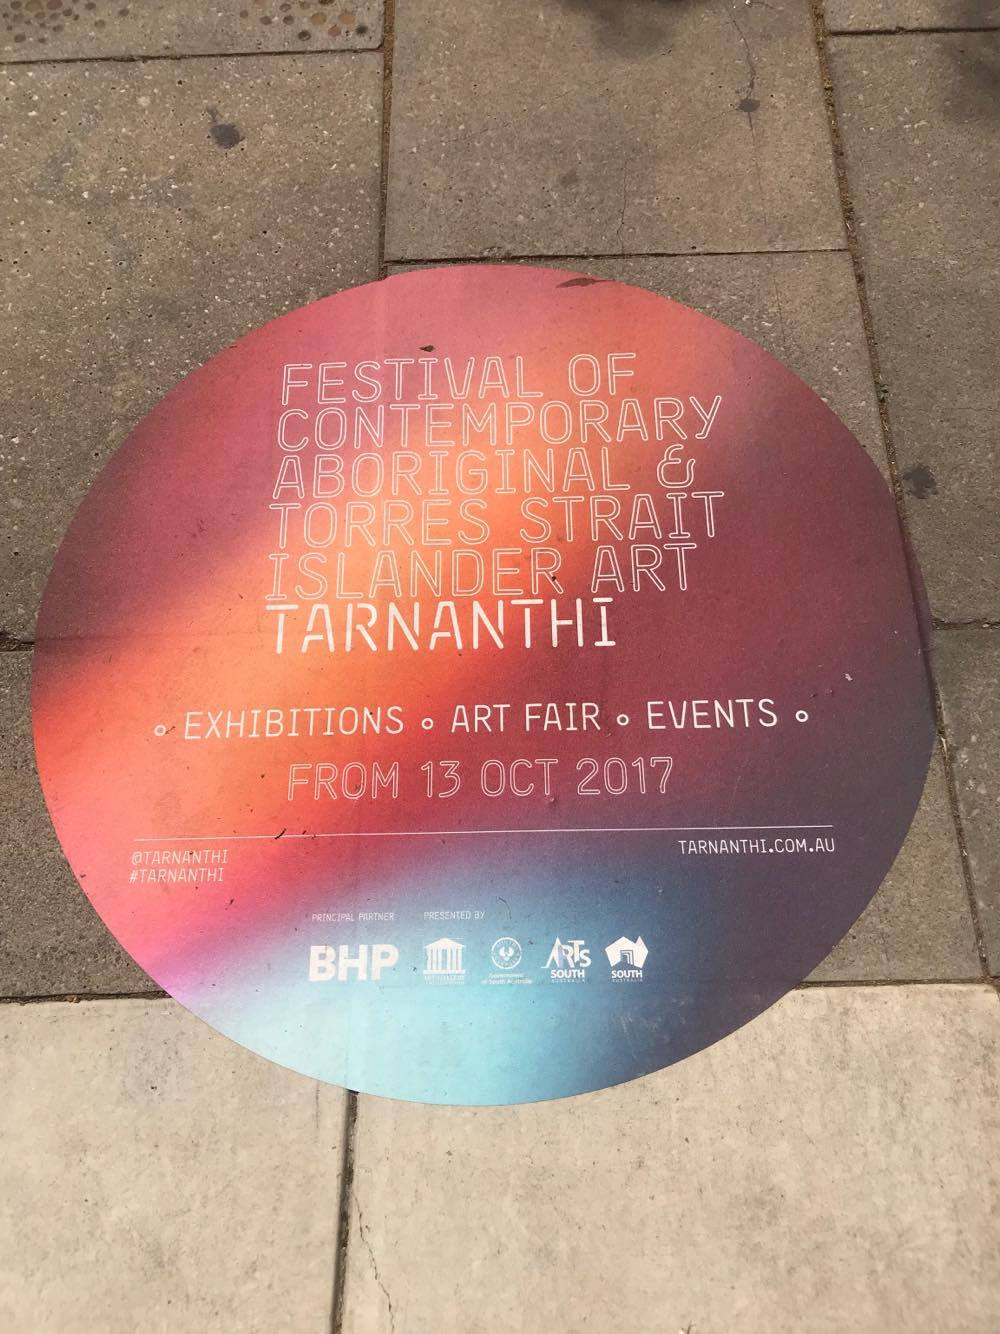 One of the TARNANTHI Festival spots seen on the streets of Adelaide